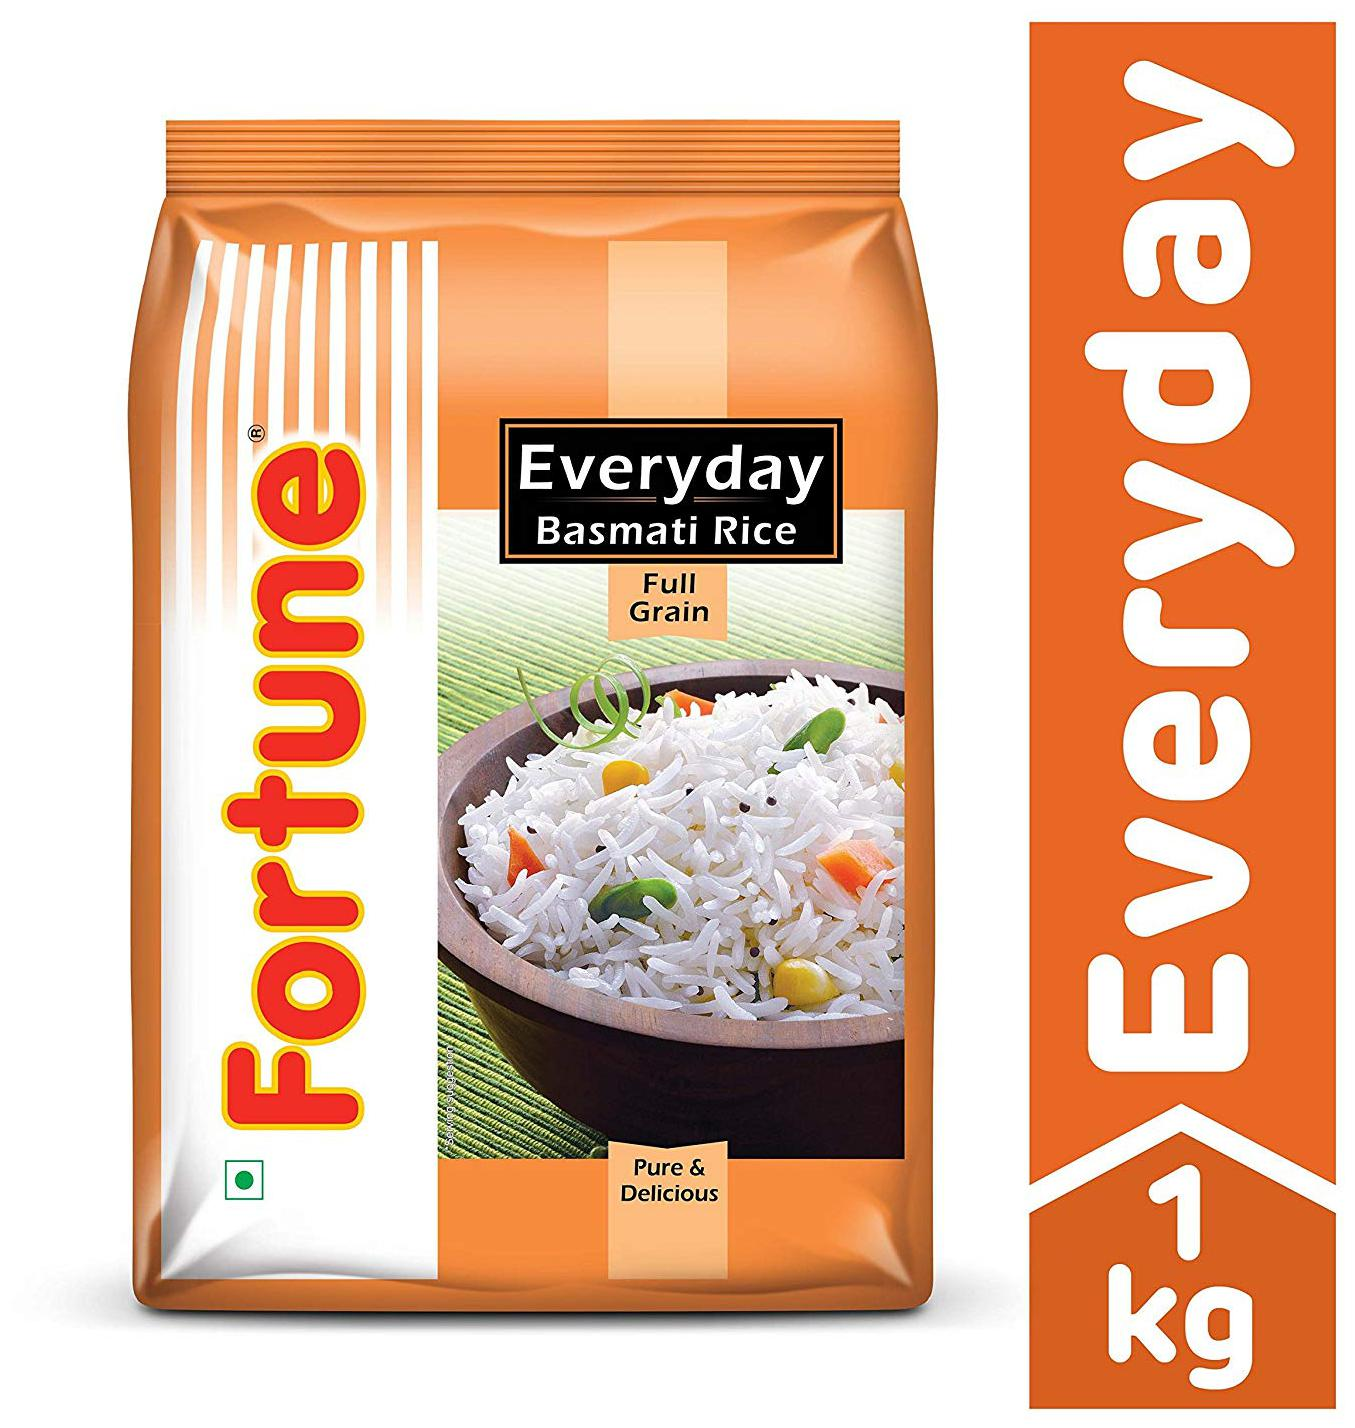 Fortune Basmati Rice - Everyday 1 kg